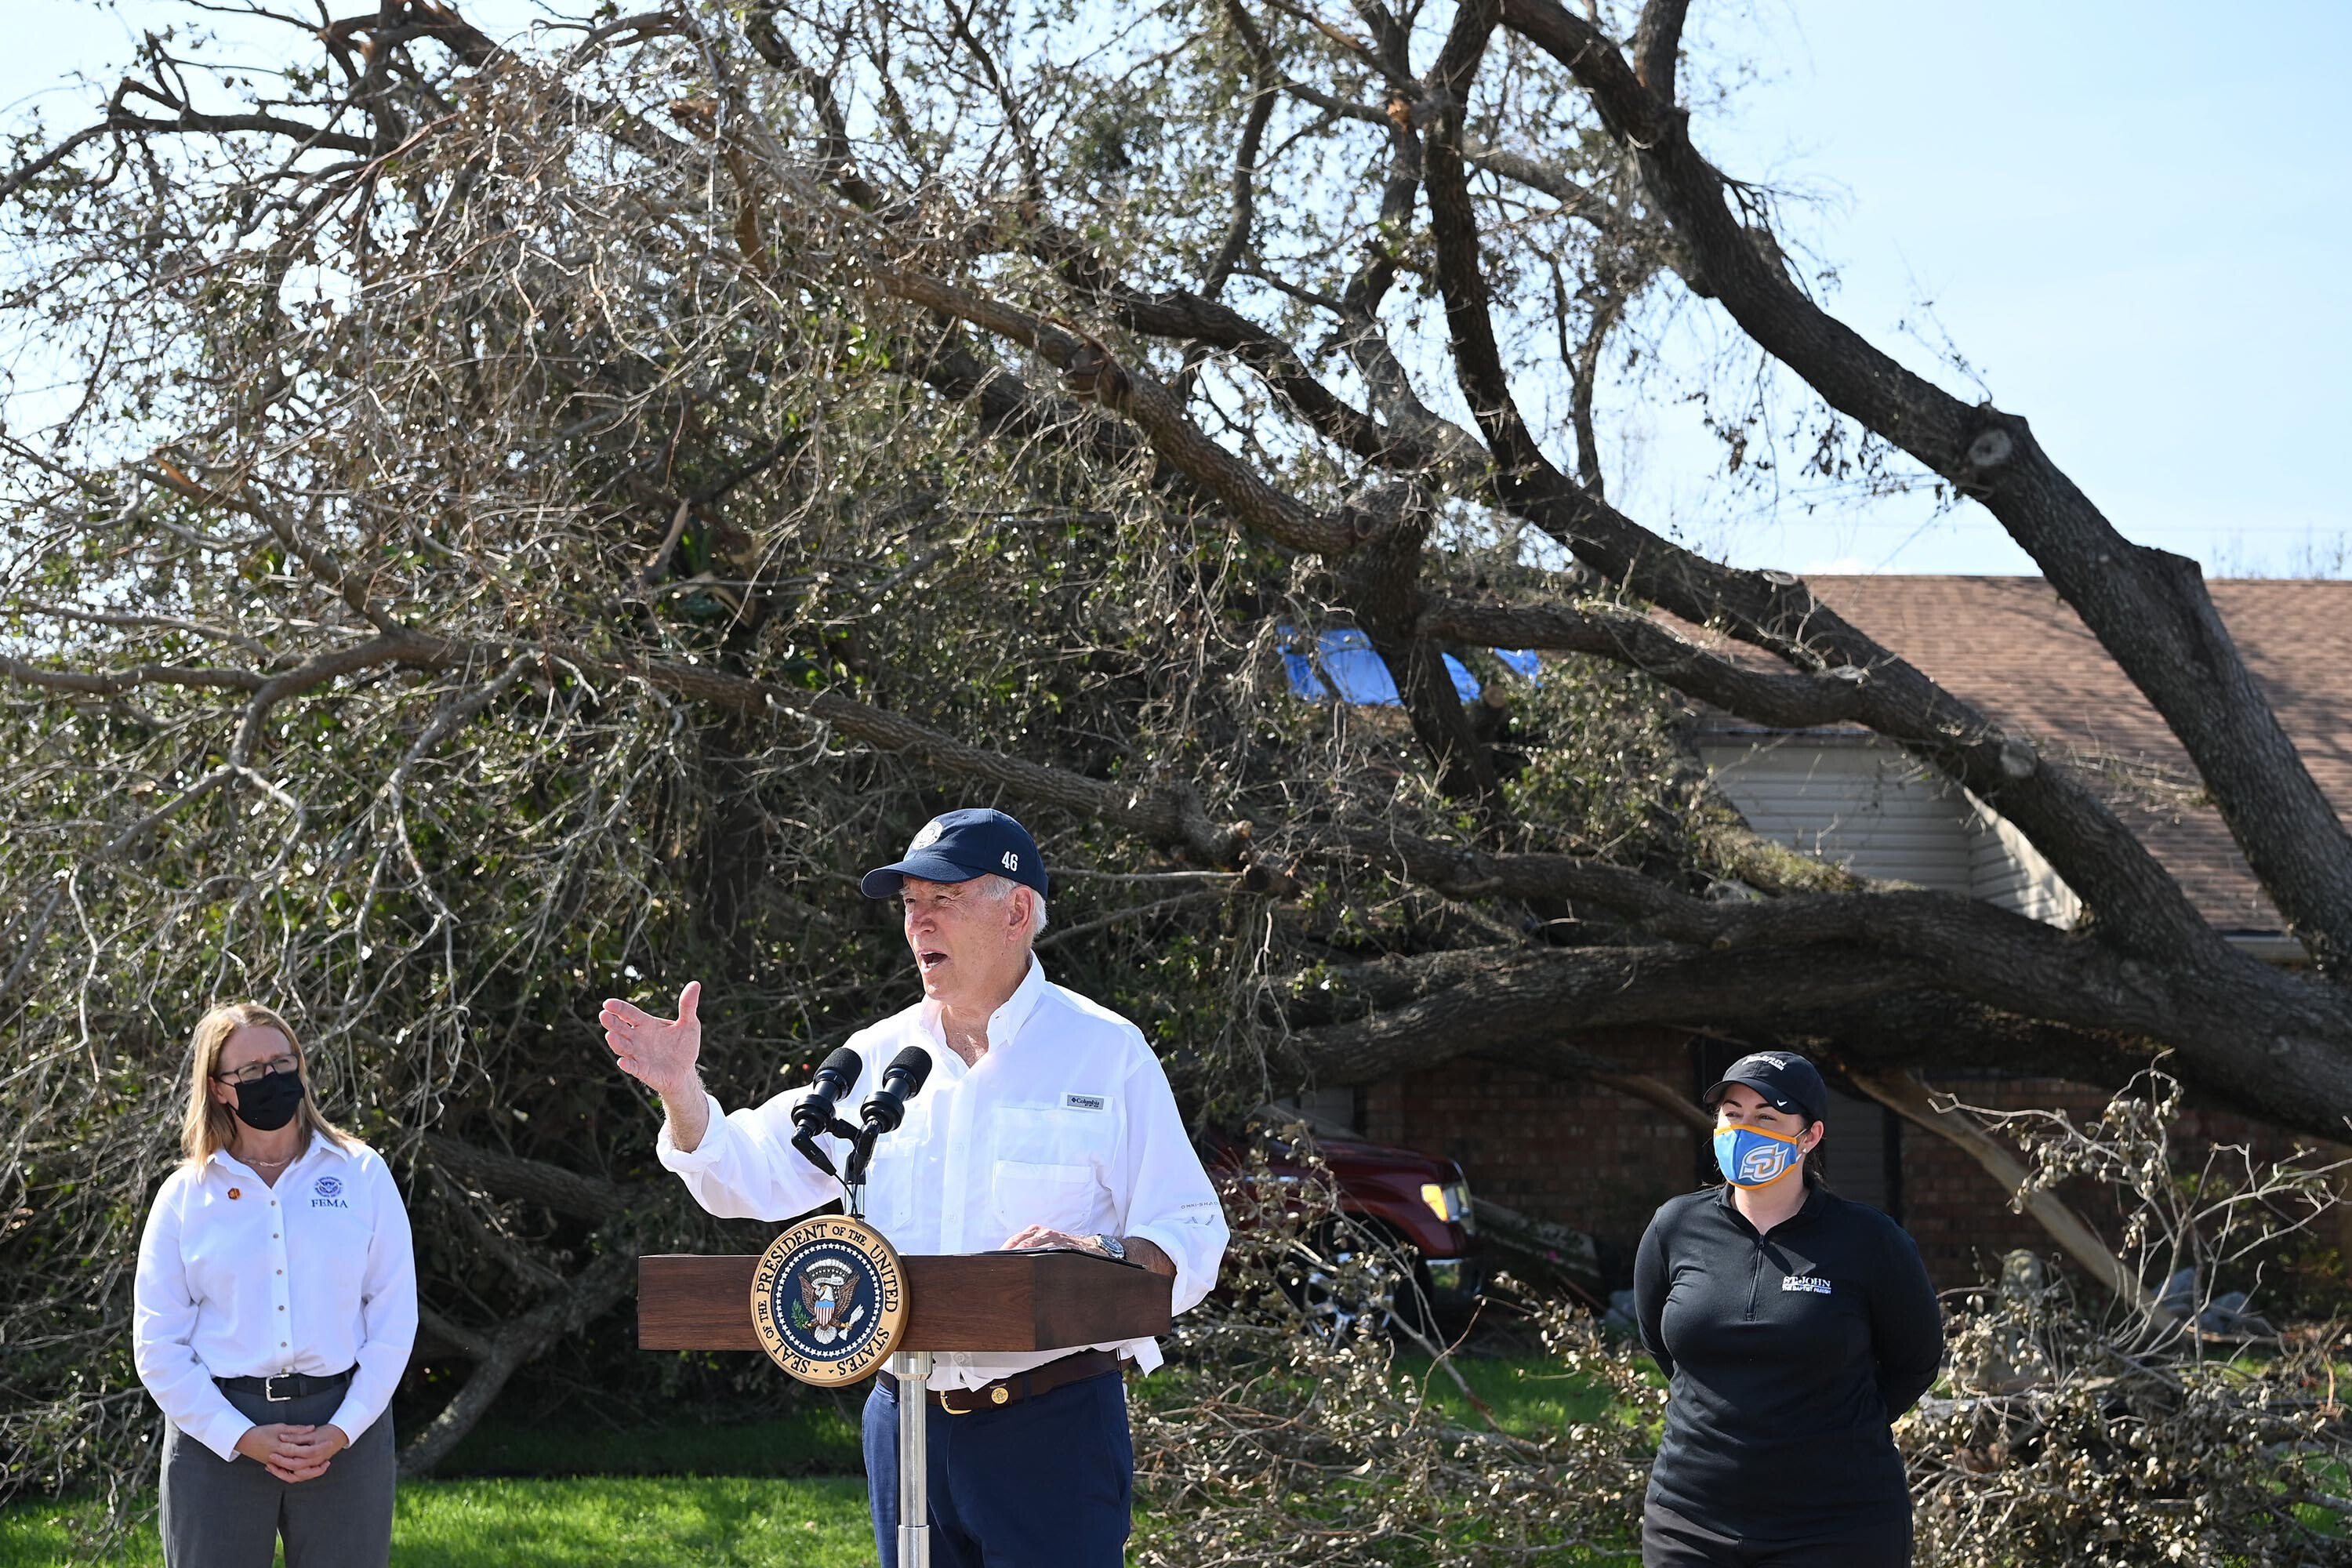 Biden on Hurricane Ida relief efforts: 'We're not going home til this gets done'